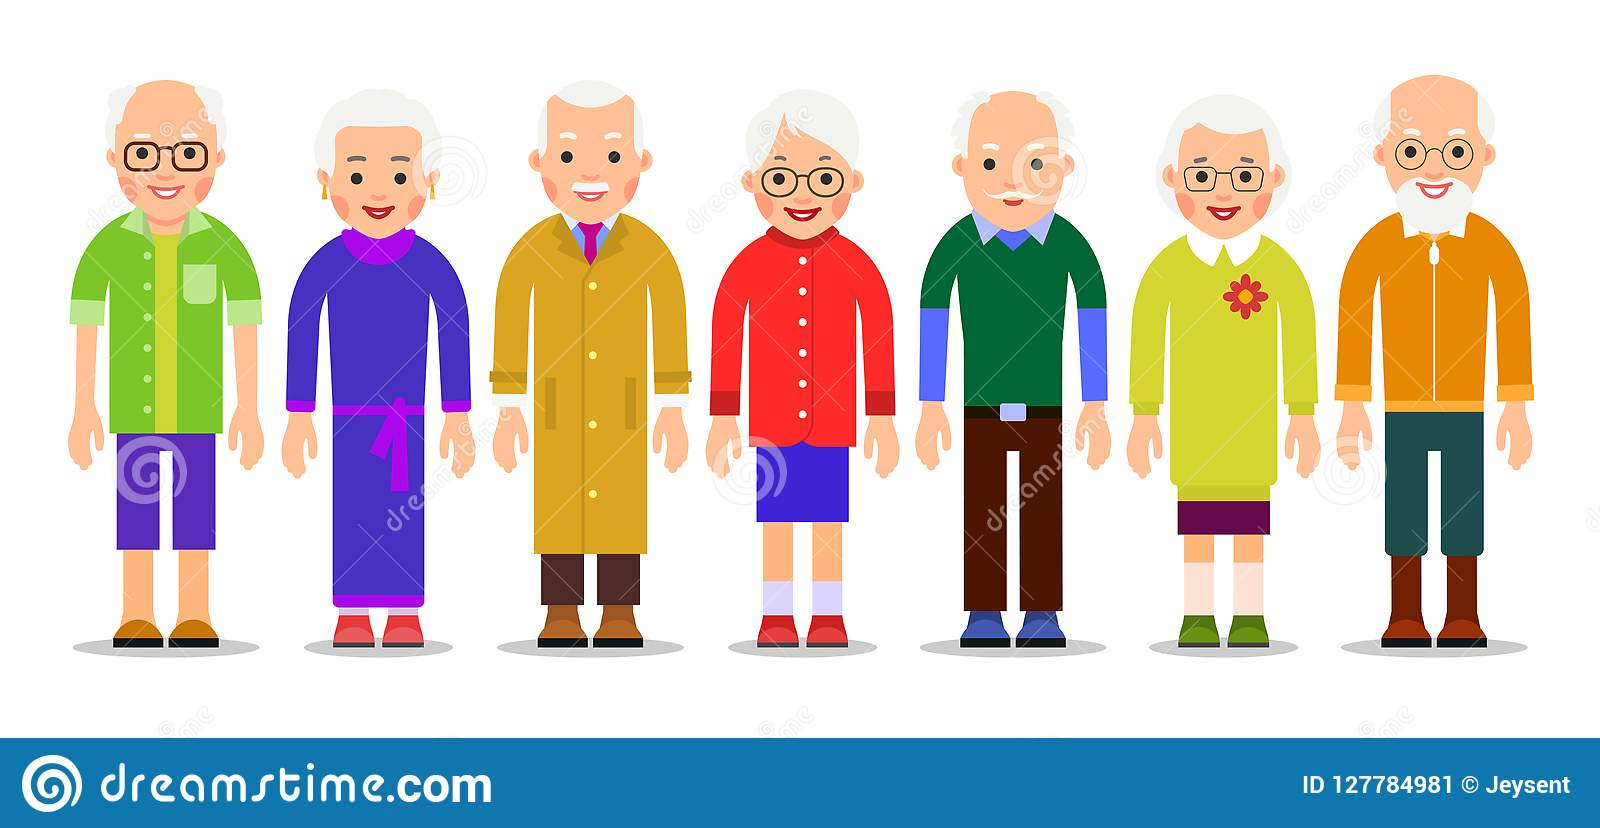 Group older people. Adults person stand next to each other. Elderly men and women. Aged citizens caucasian. Illustration